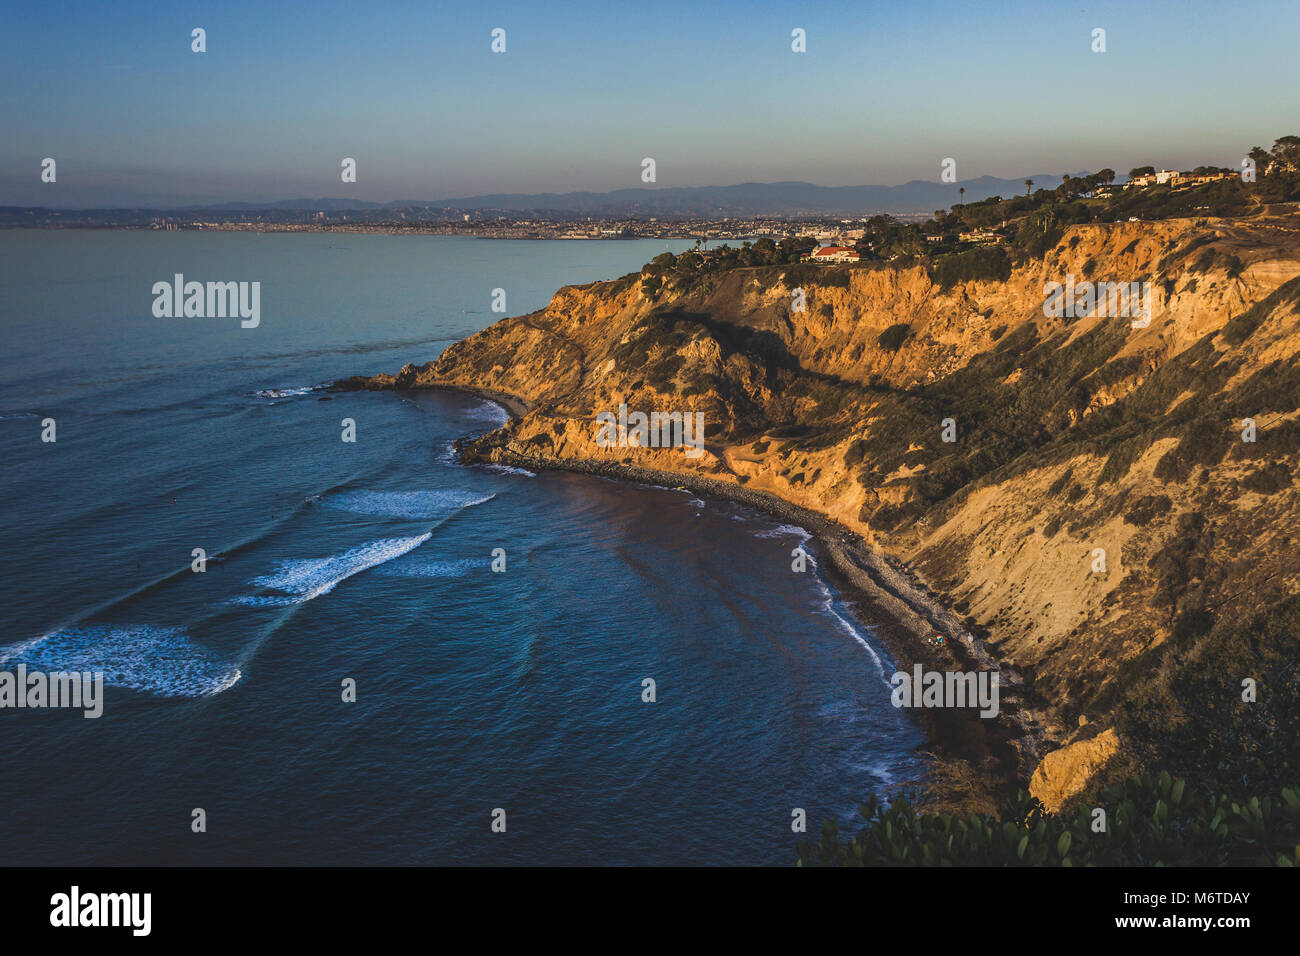 Beautiful view of giant bluffs and homes of Flat Rock Point at sunset with coastline view of nearby South Bay beach - Stock Image